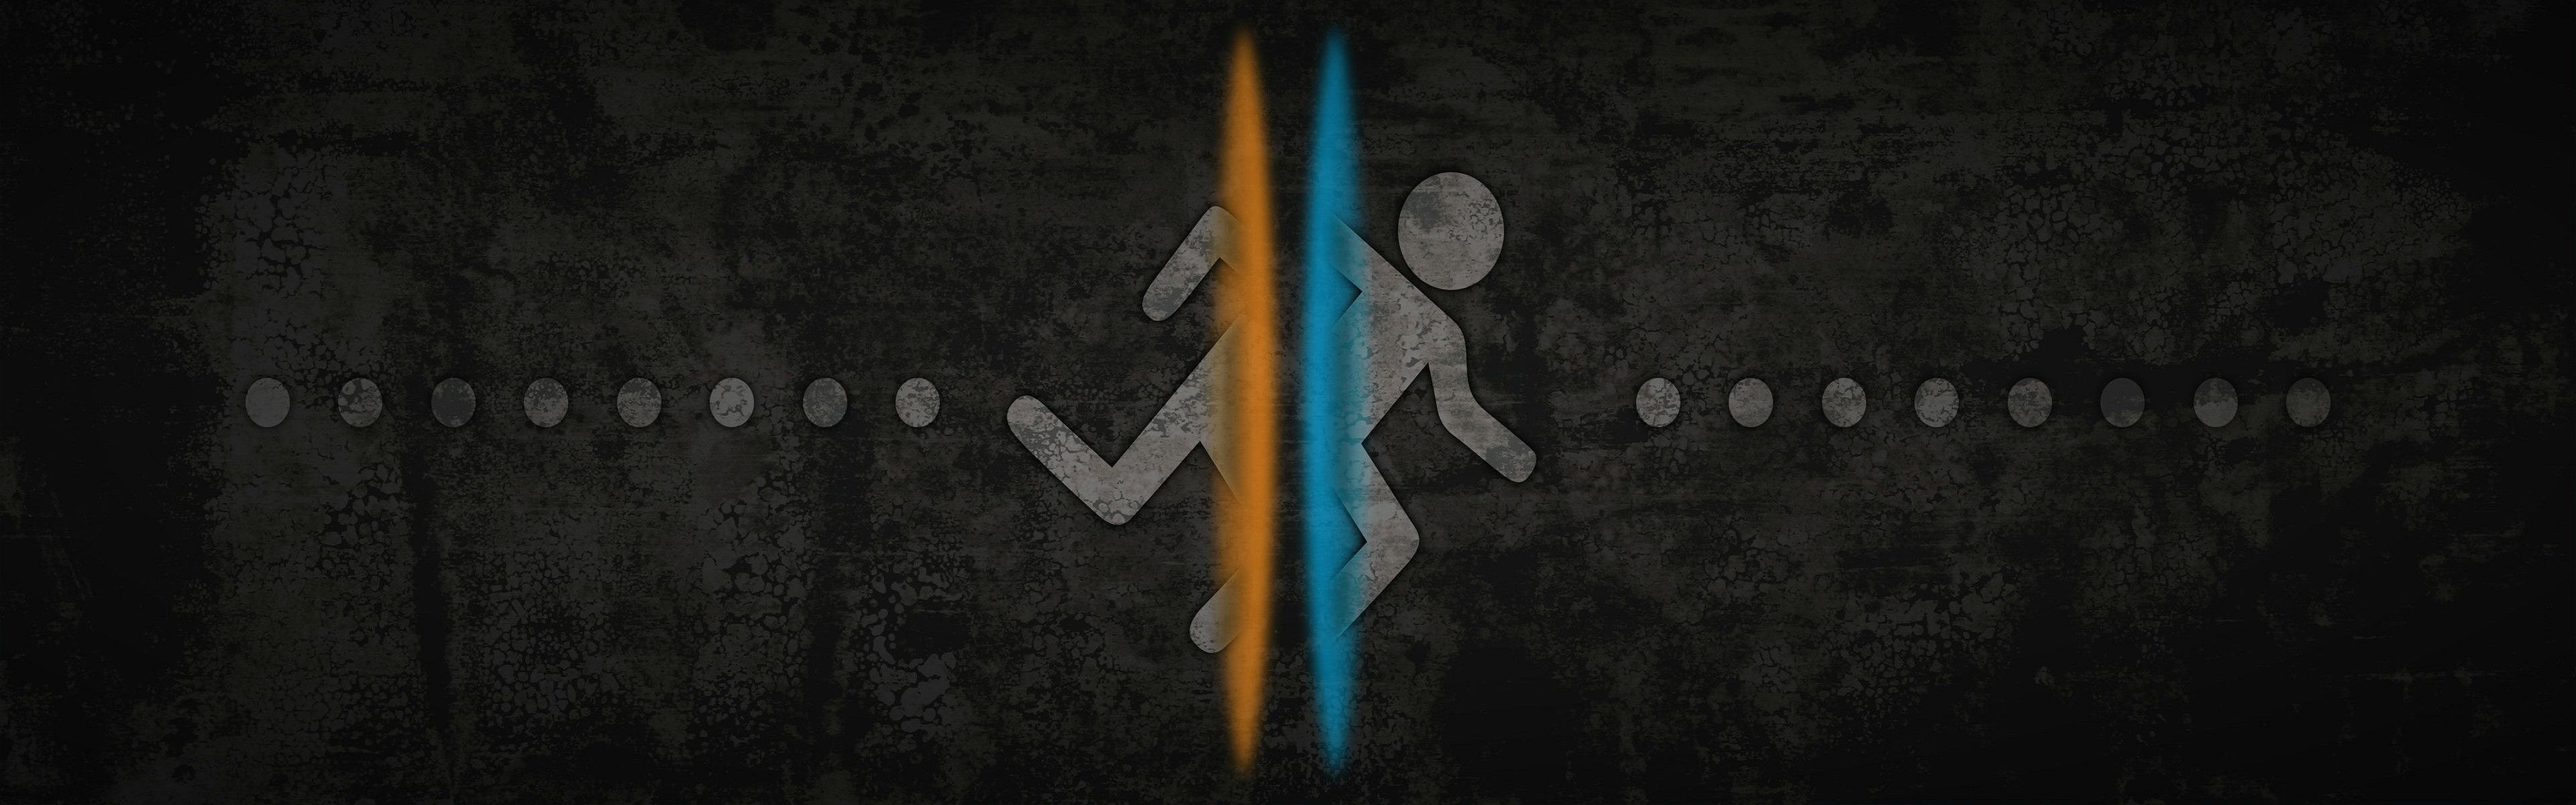 Just A Dual Monitor Portal Wallpaper I Made Enjoy And Feel Free